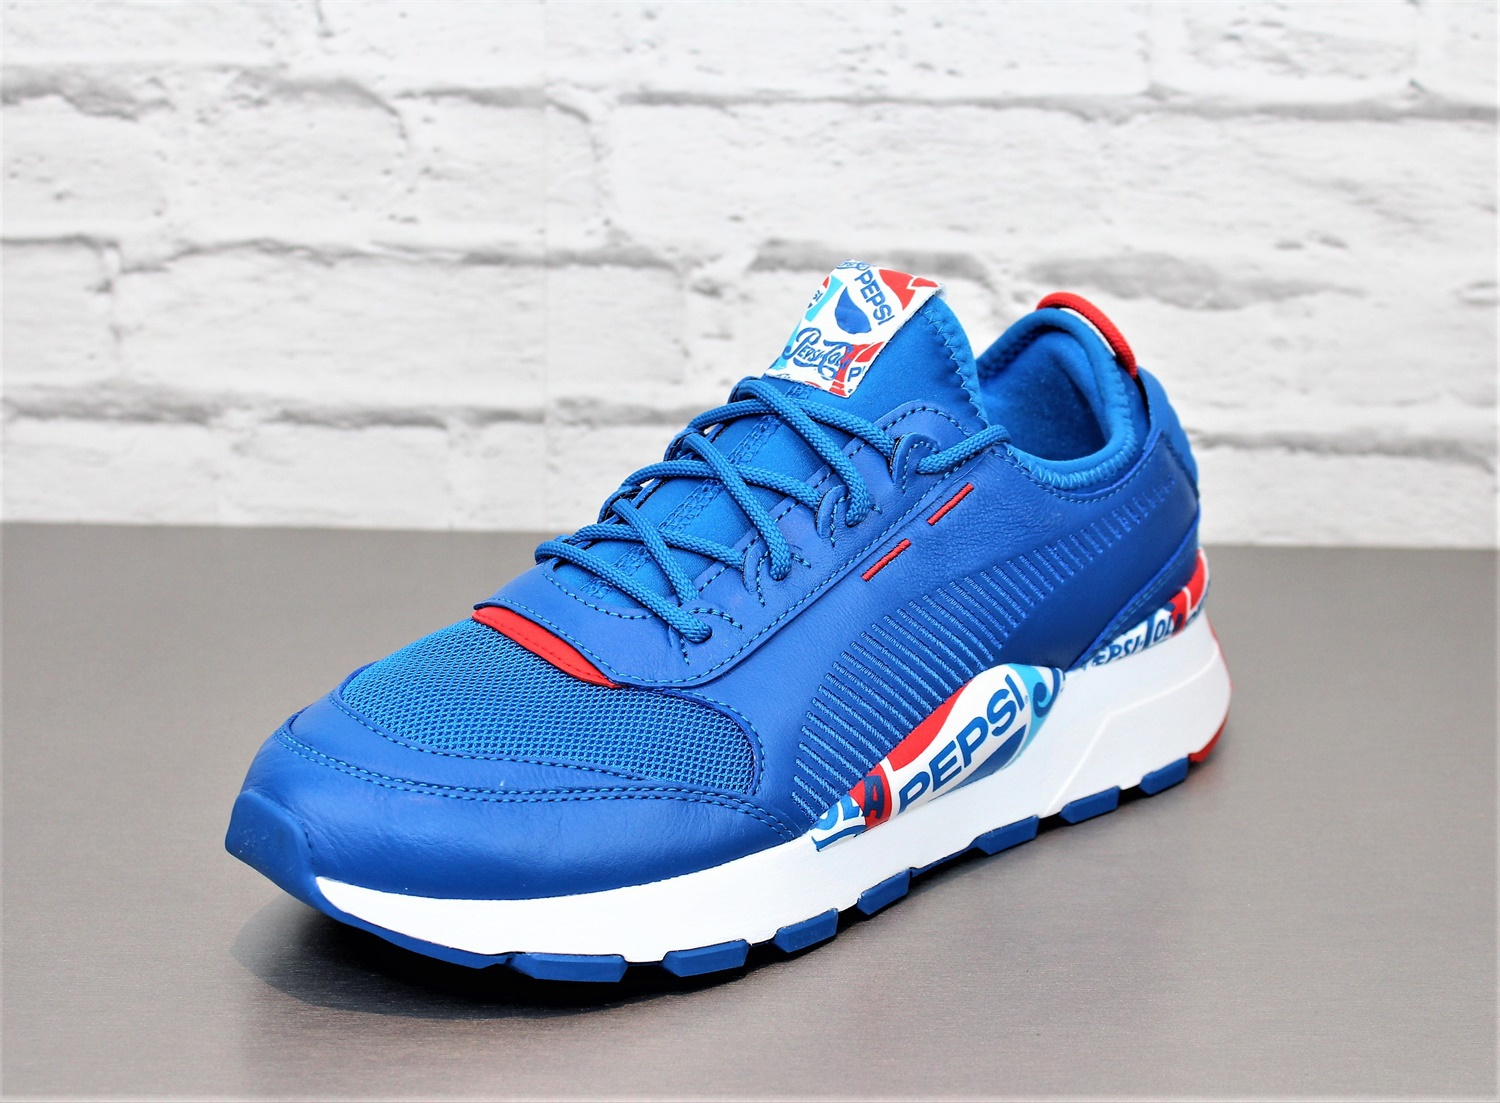 Details about Puma RS 0 x Pepsi 368344 02 Mens Shoes Sneakers Trainers Casual Shoes AFK show original title